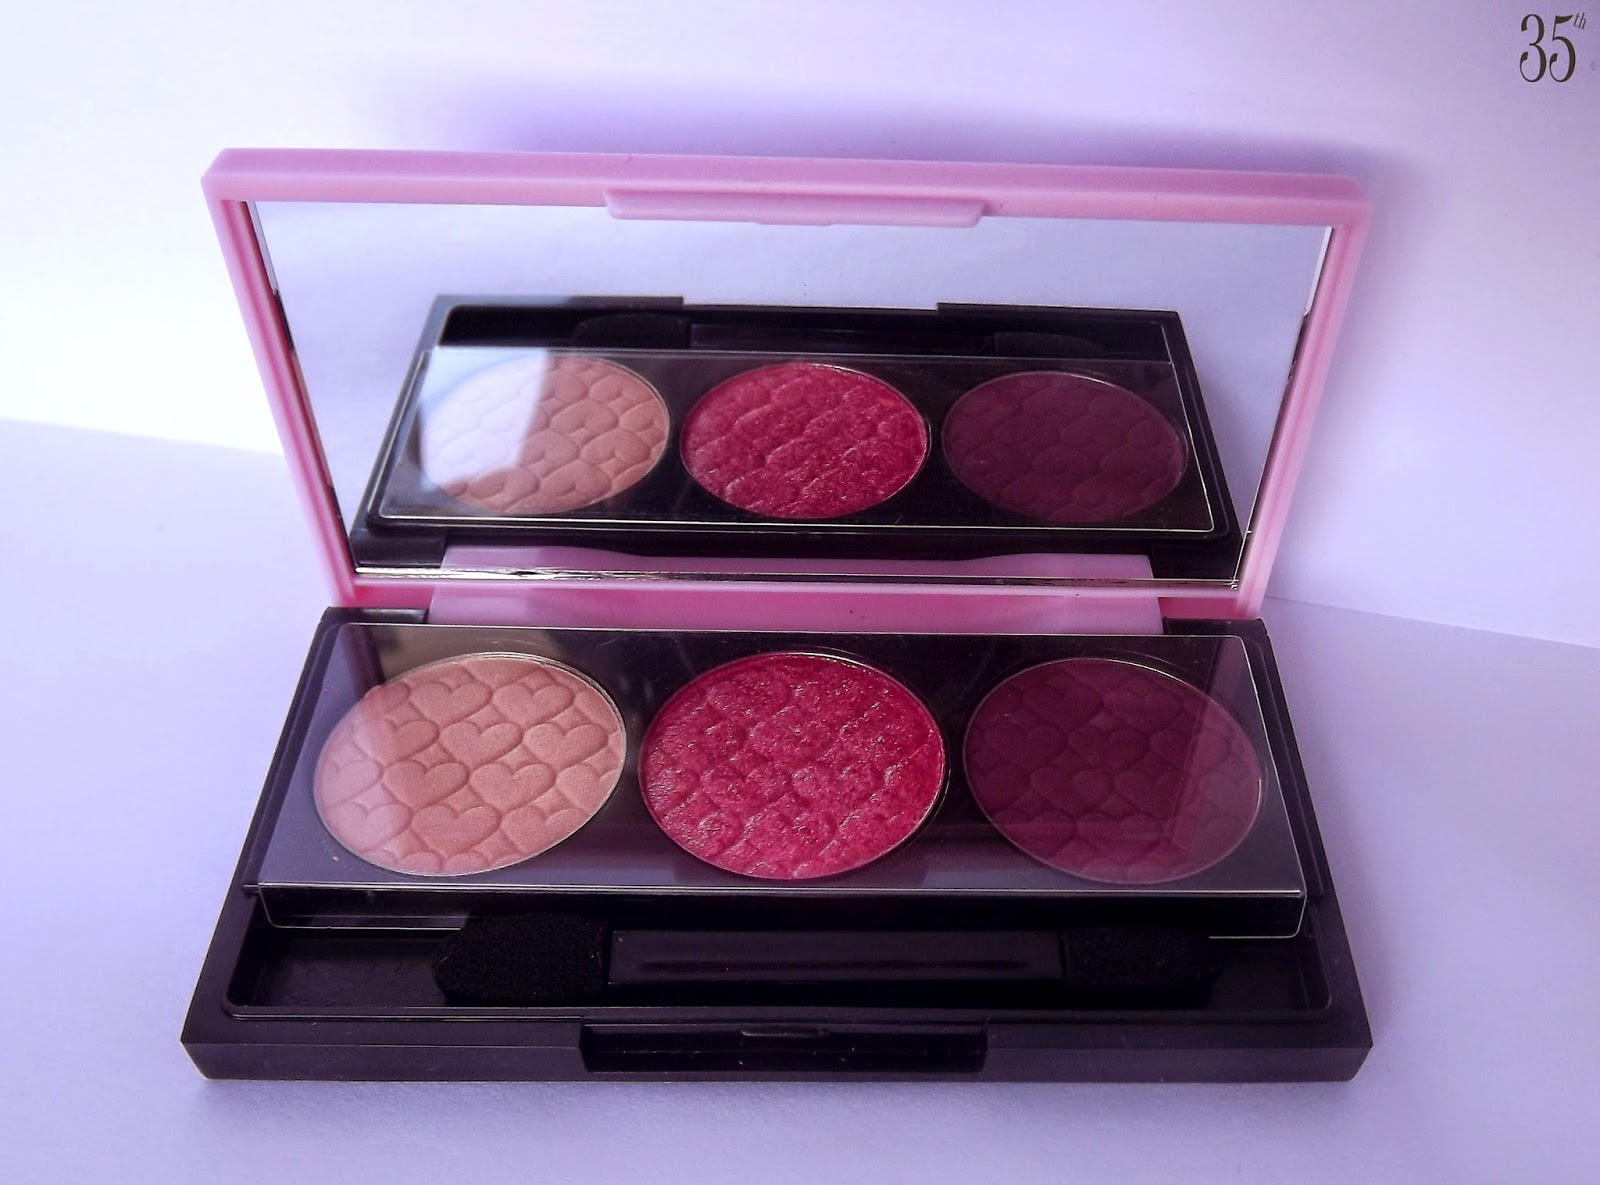 Etude House Look at my eyes palette in #3 Love Potion